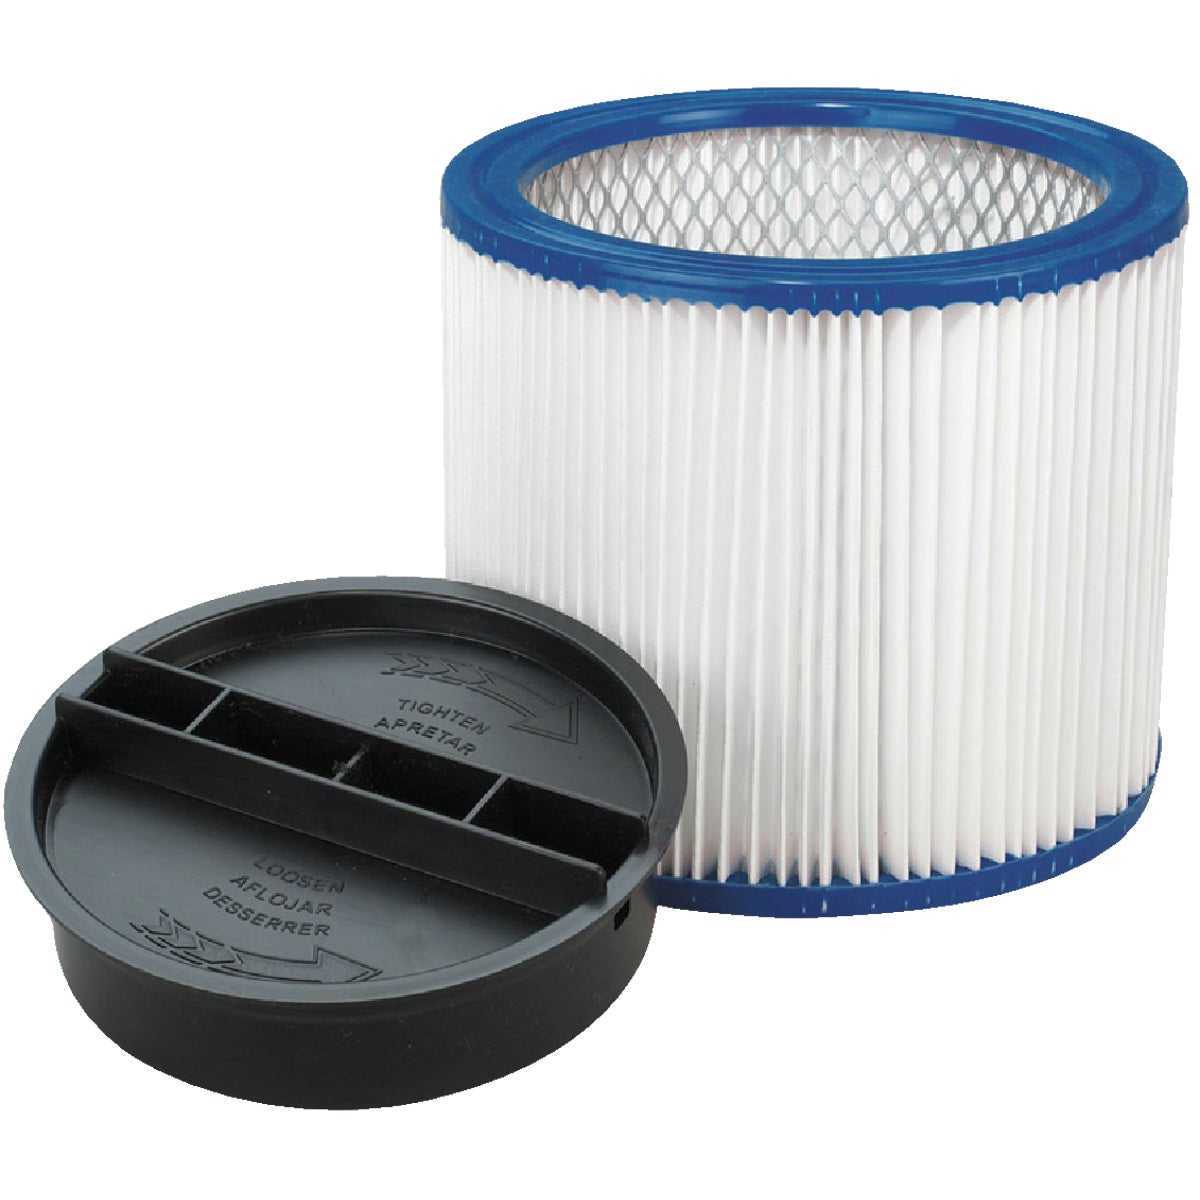 HEPA FILTER - 9034000 by Shop Vac Corp